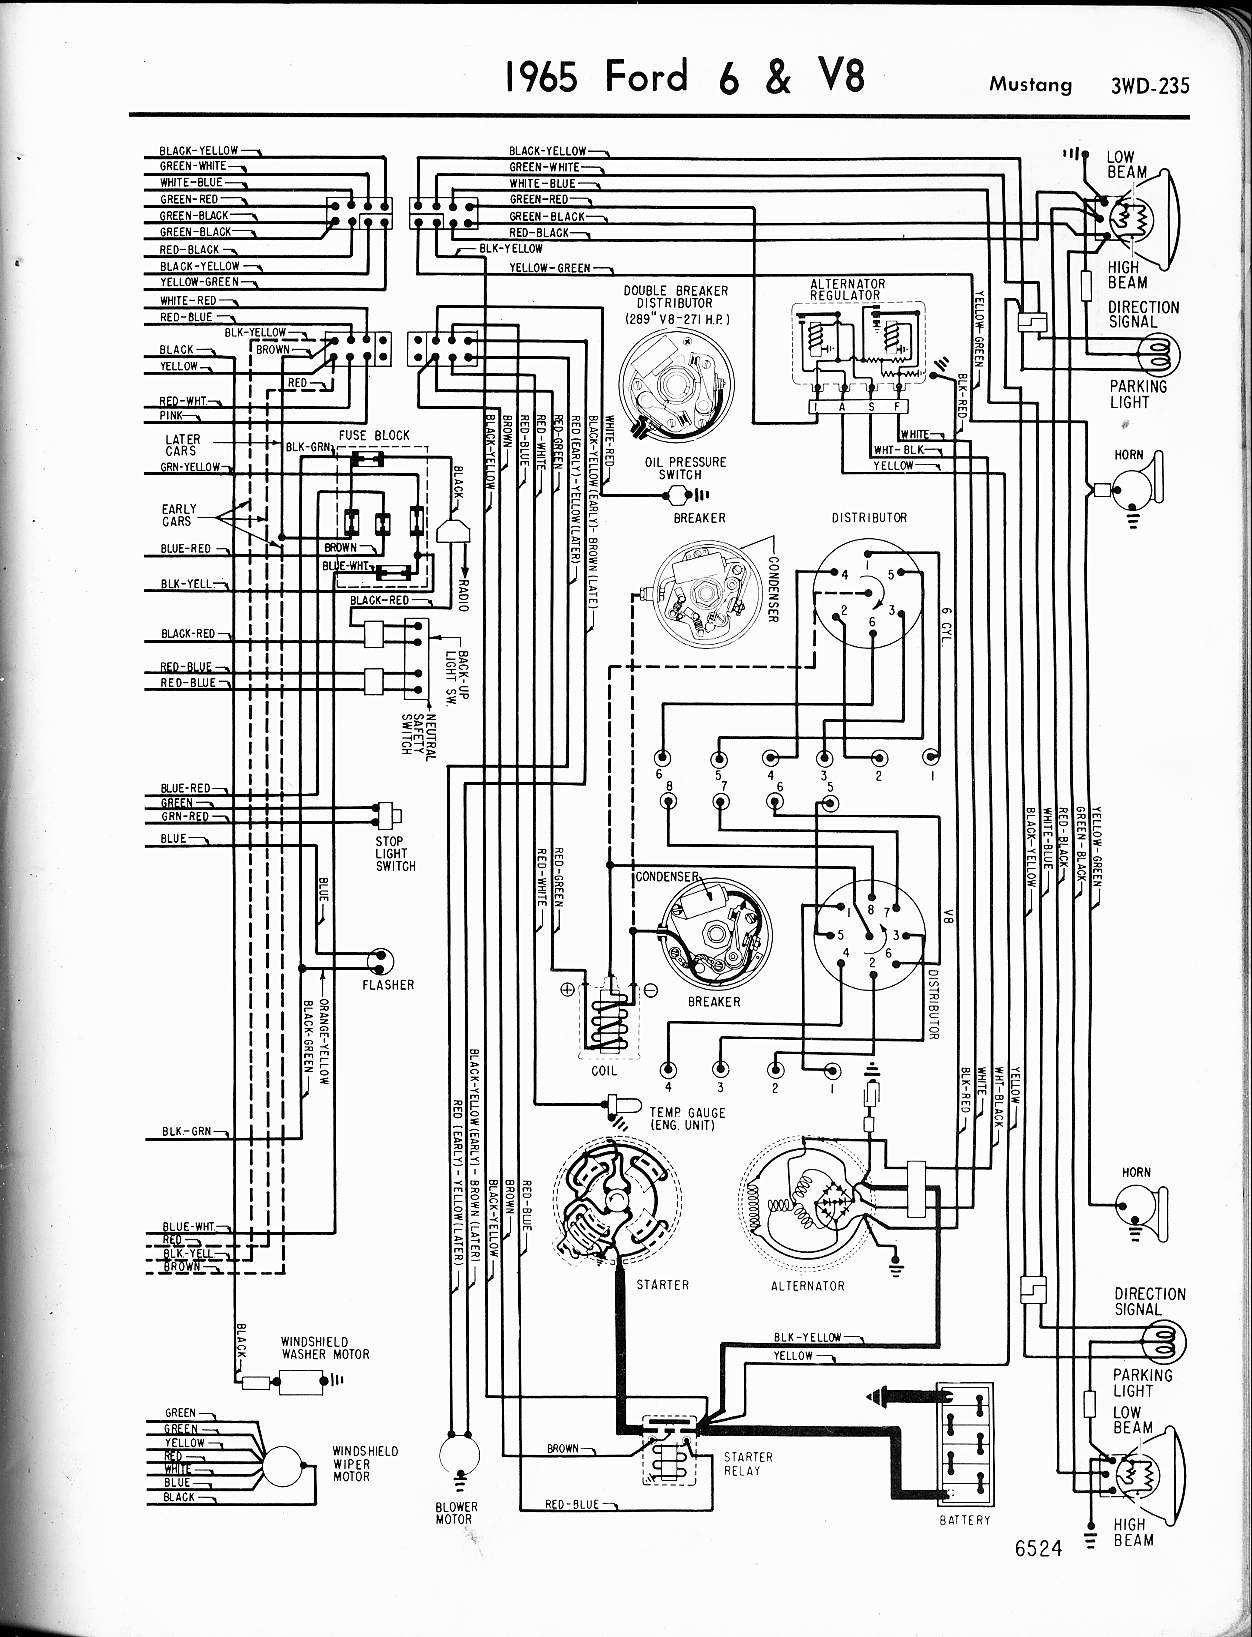 998956C 1984 Ford F350 Wiring Harness Diagrams | Wiring Library  Wiring Library